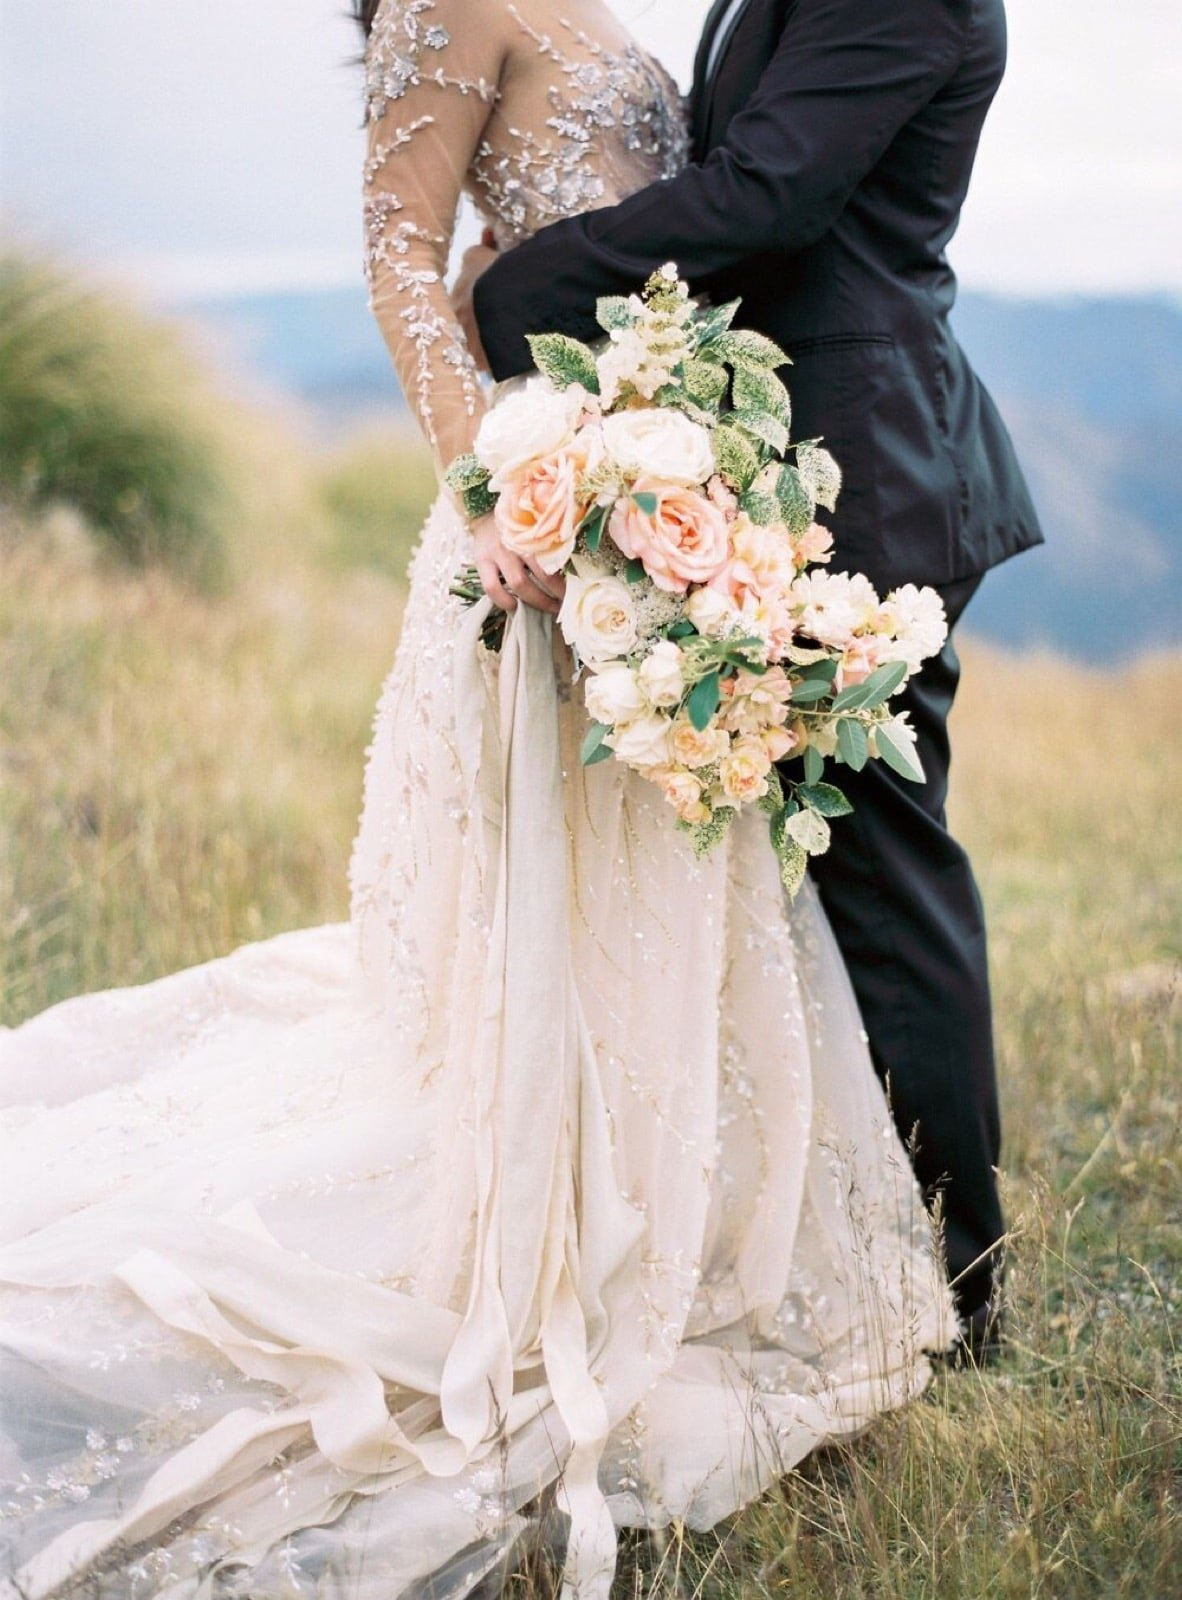 janna brown nashville florist and wedding designer-16